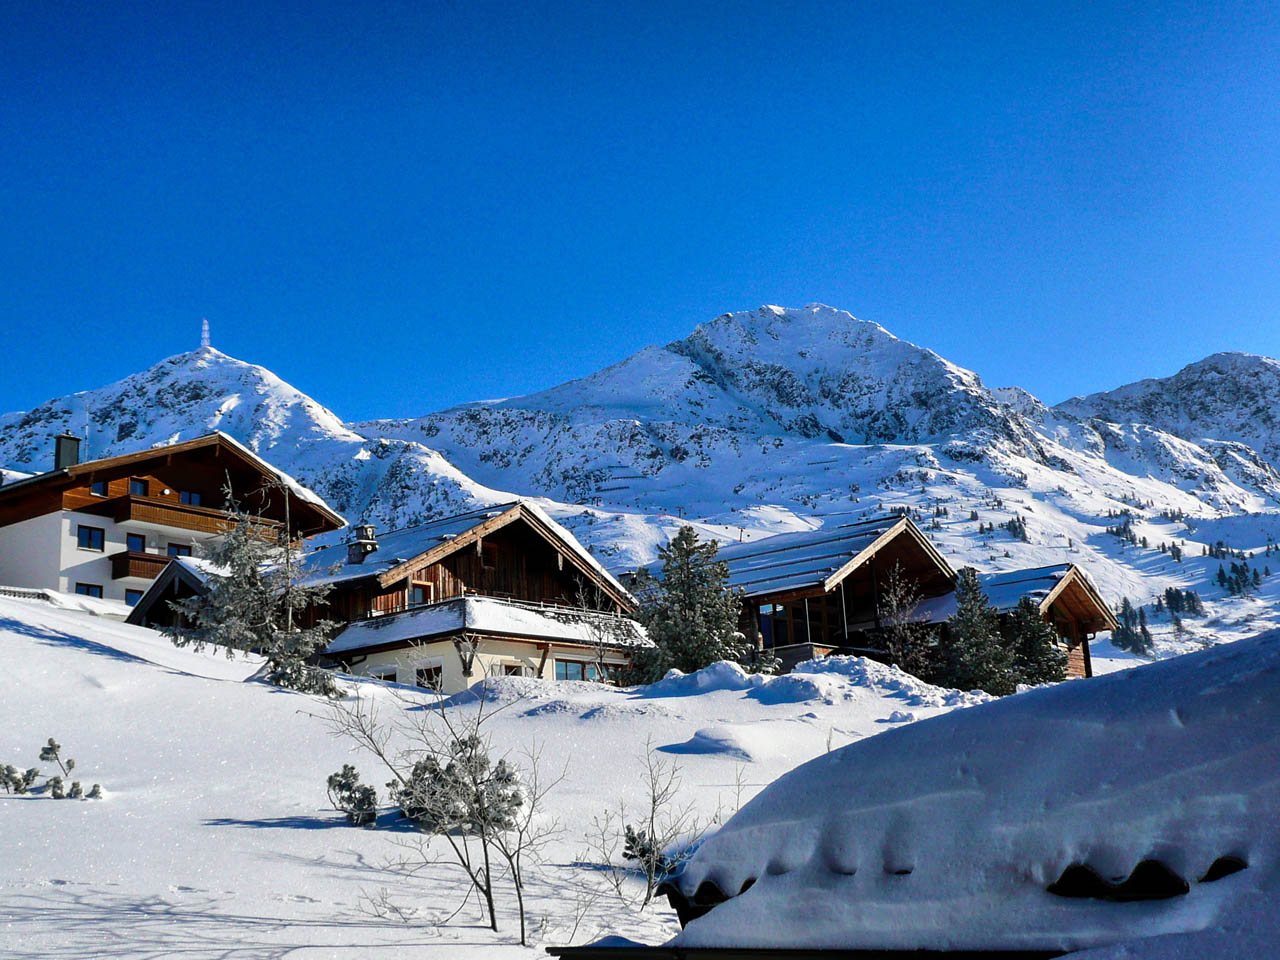 Top 5 best ski resorts in Europe for buying a second home